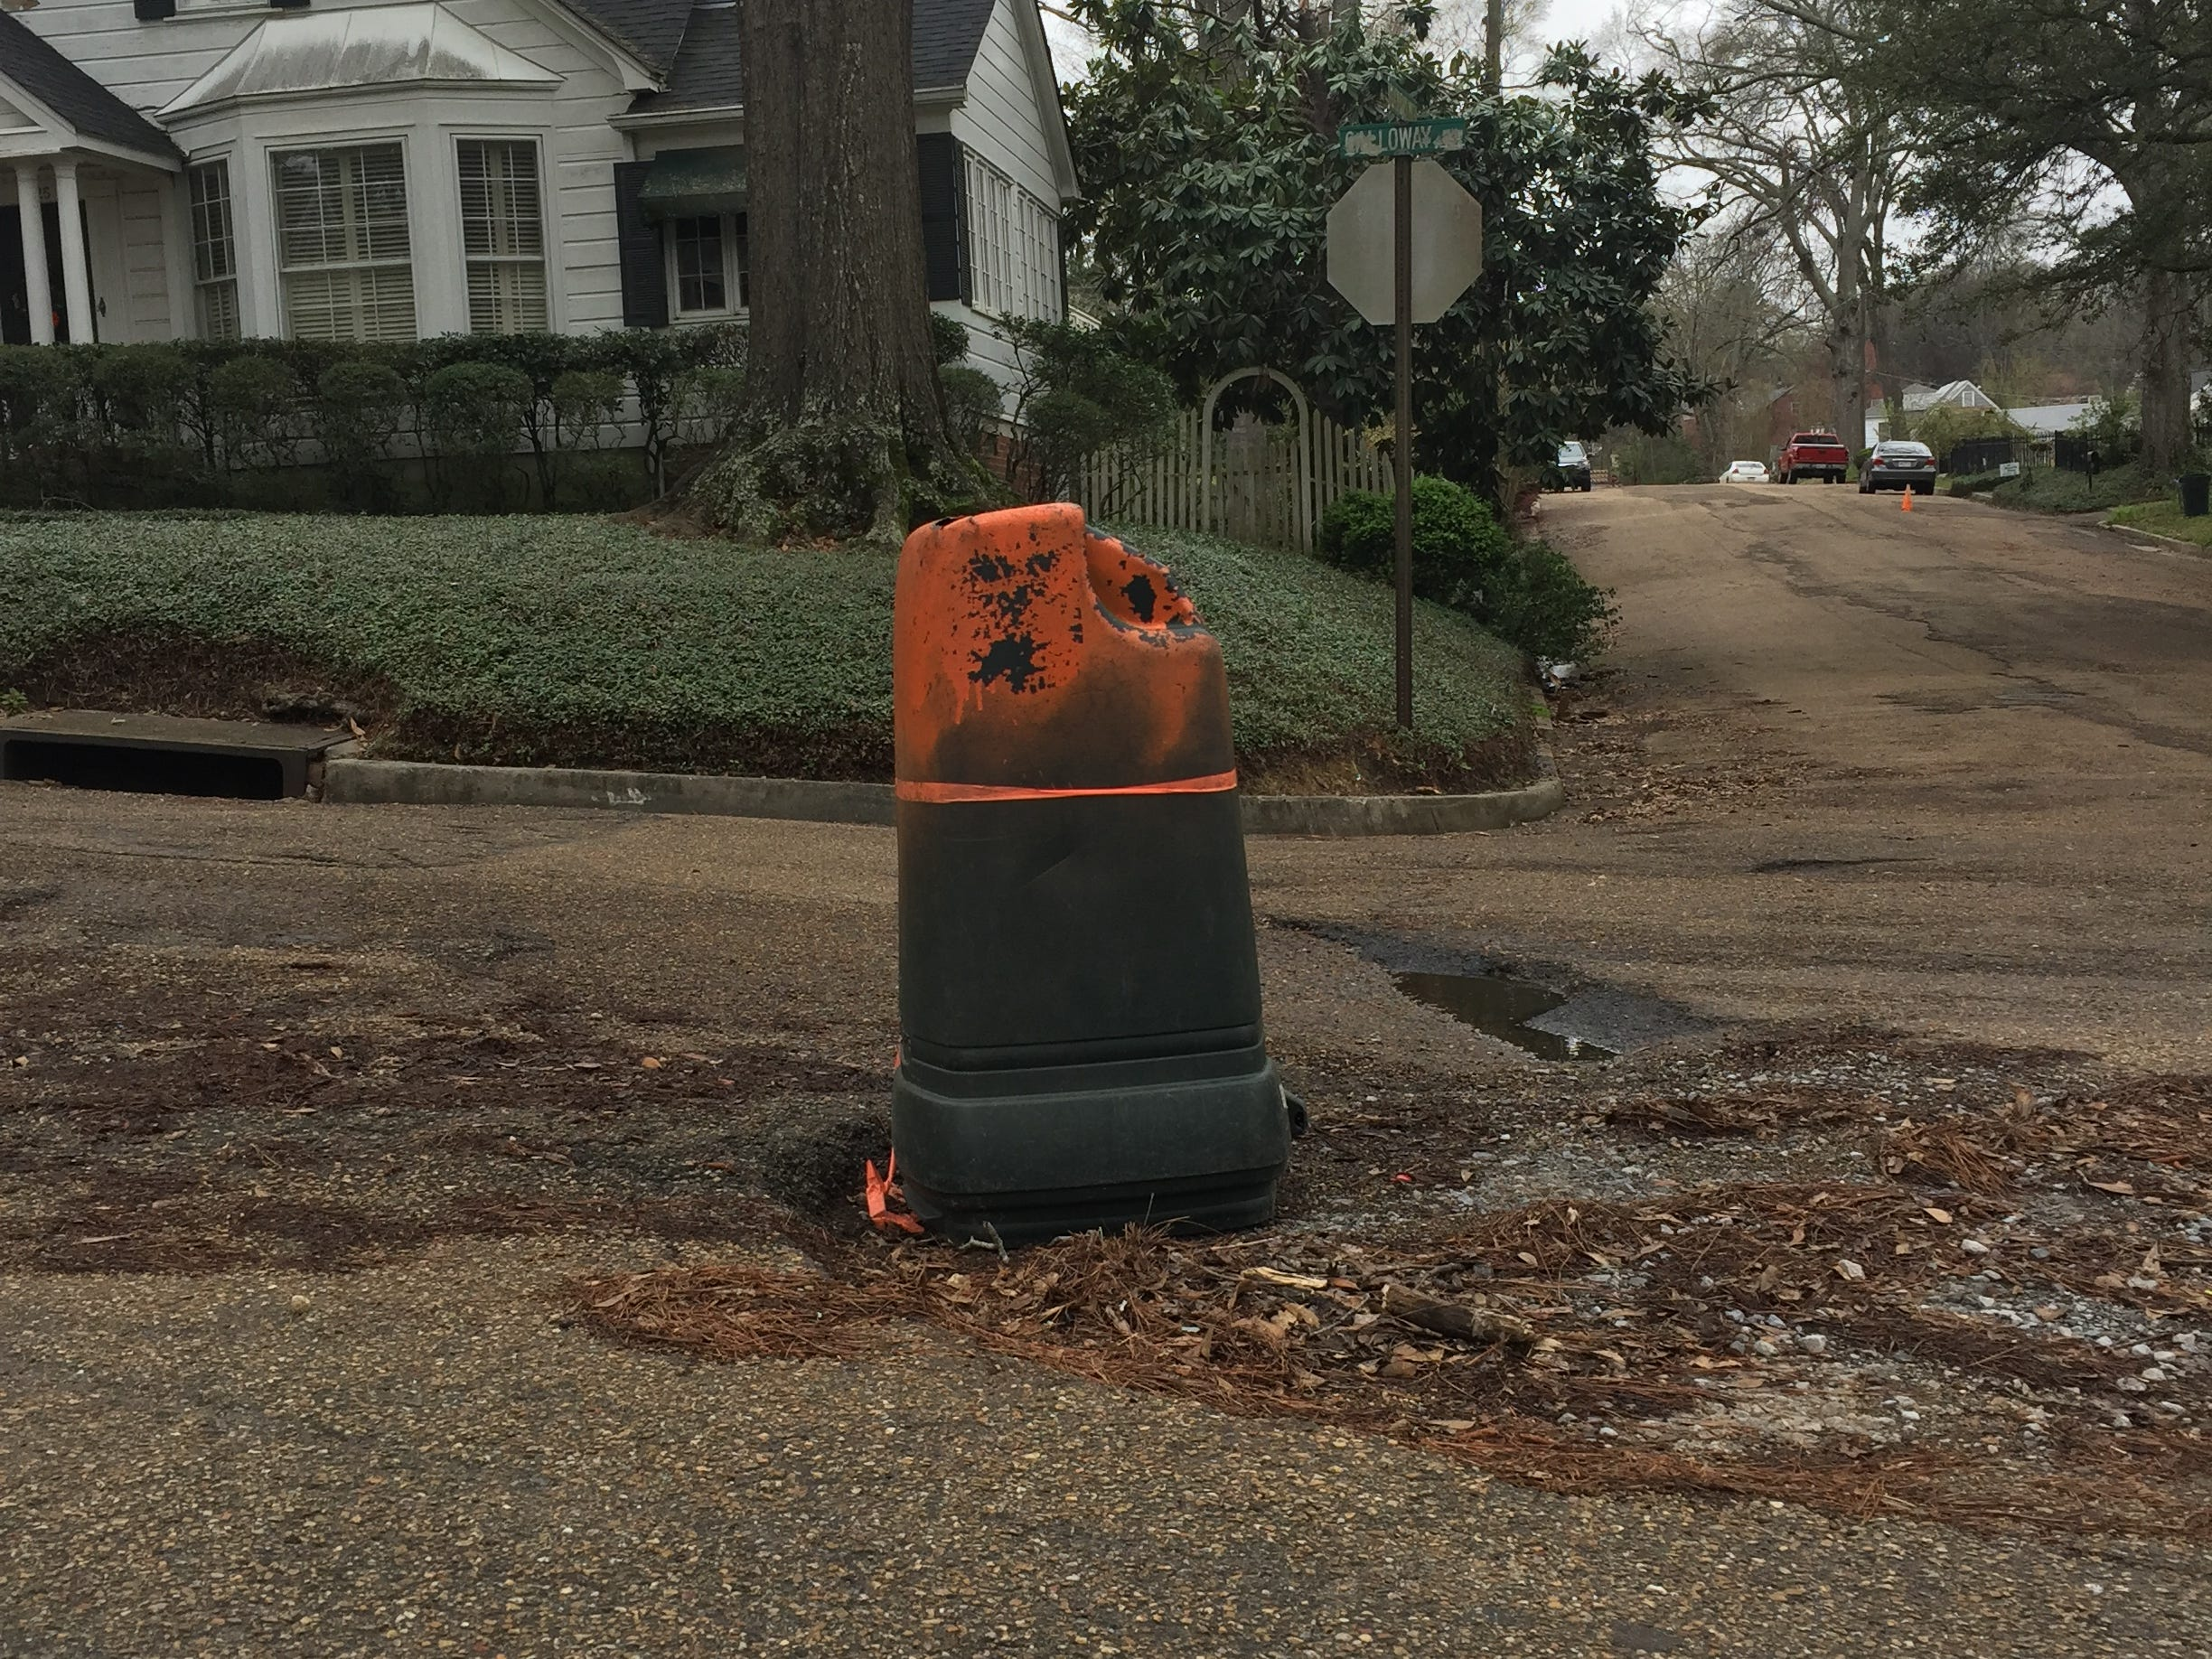 A resident has spray-painted the top of a garbage can to warn drivers of potholes on Broadway at Galloway in Jackson's Fondren neighborhood, Saturday, March 2, 2019.